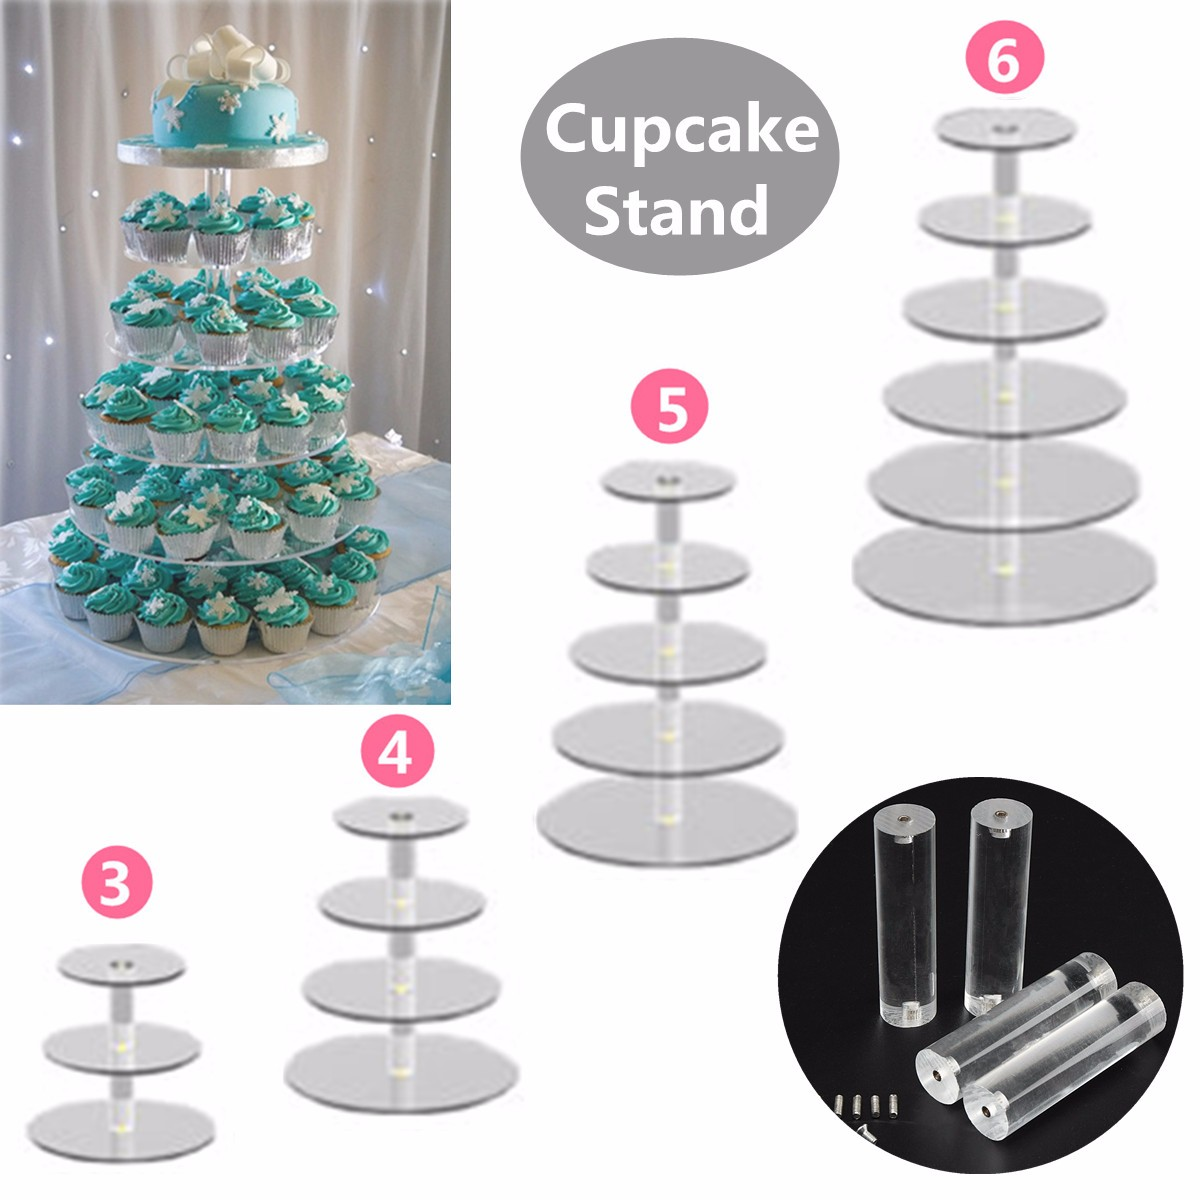 3/4/5/6 Tier Clear Acrylic Cake Stand Round Crystal Cupcake Tower Stand Wedding Birthday Party Decoration